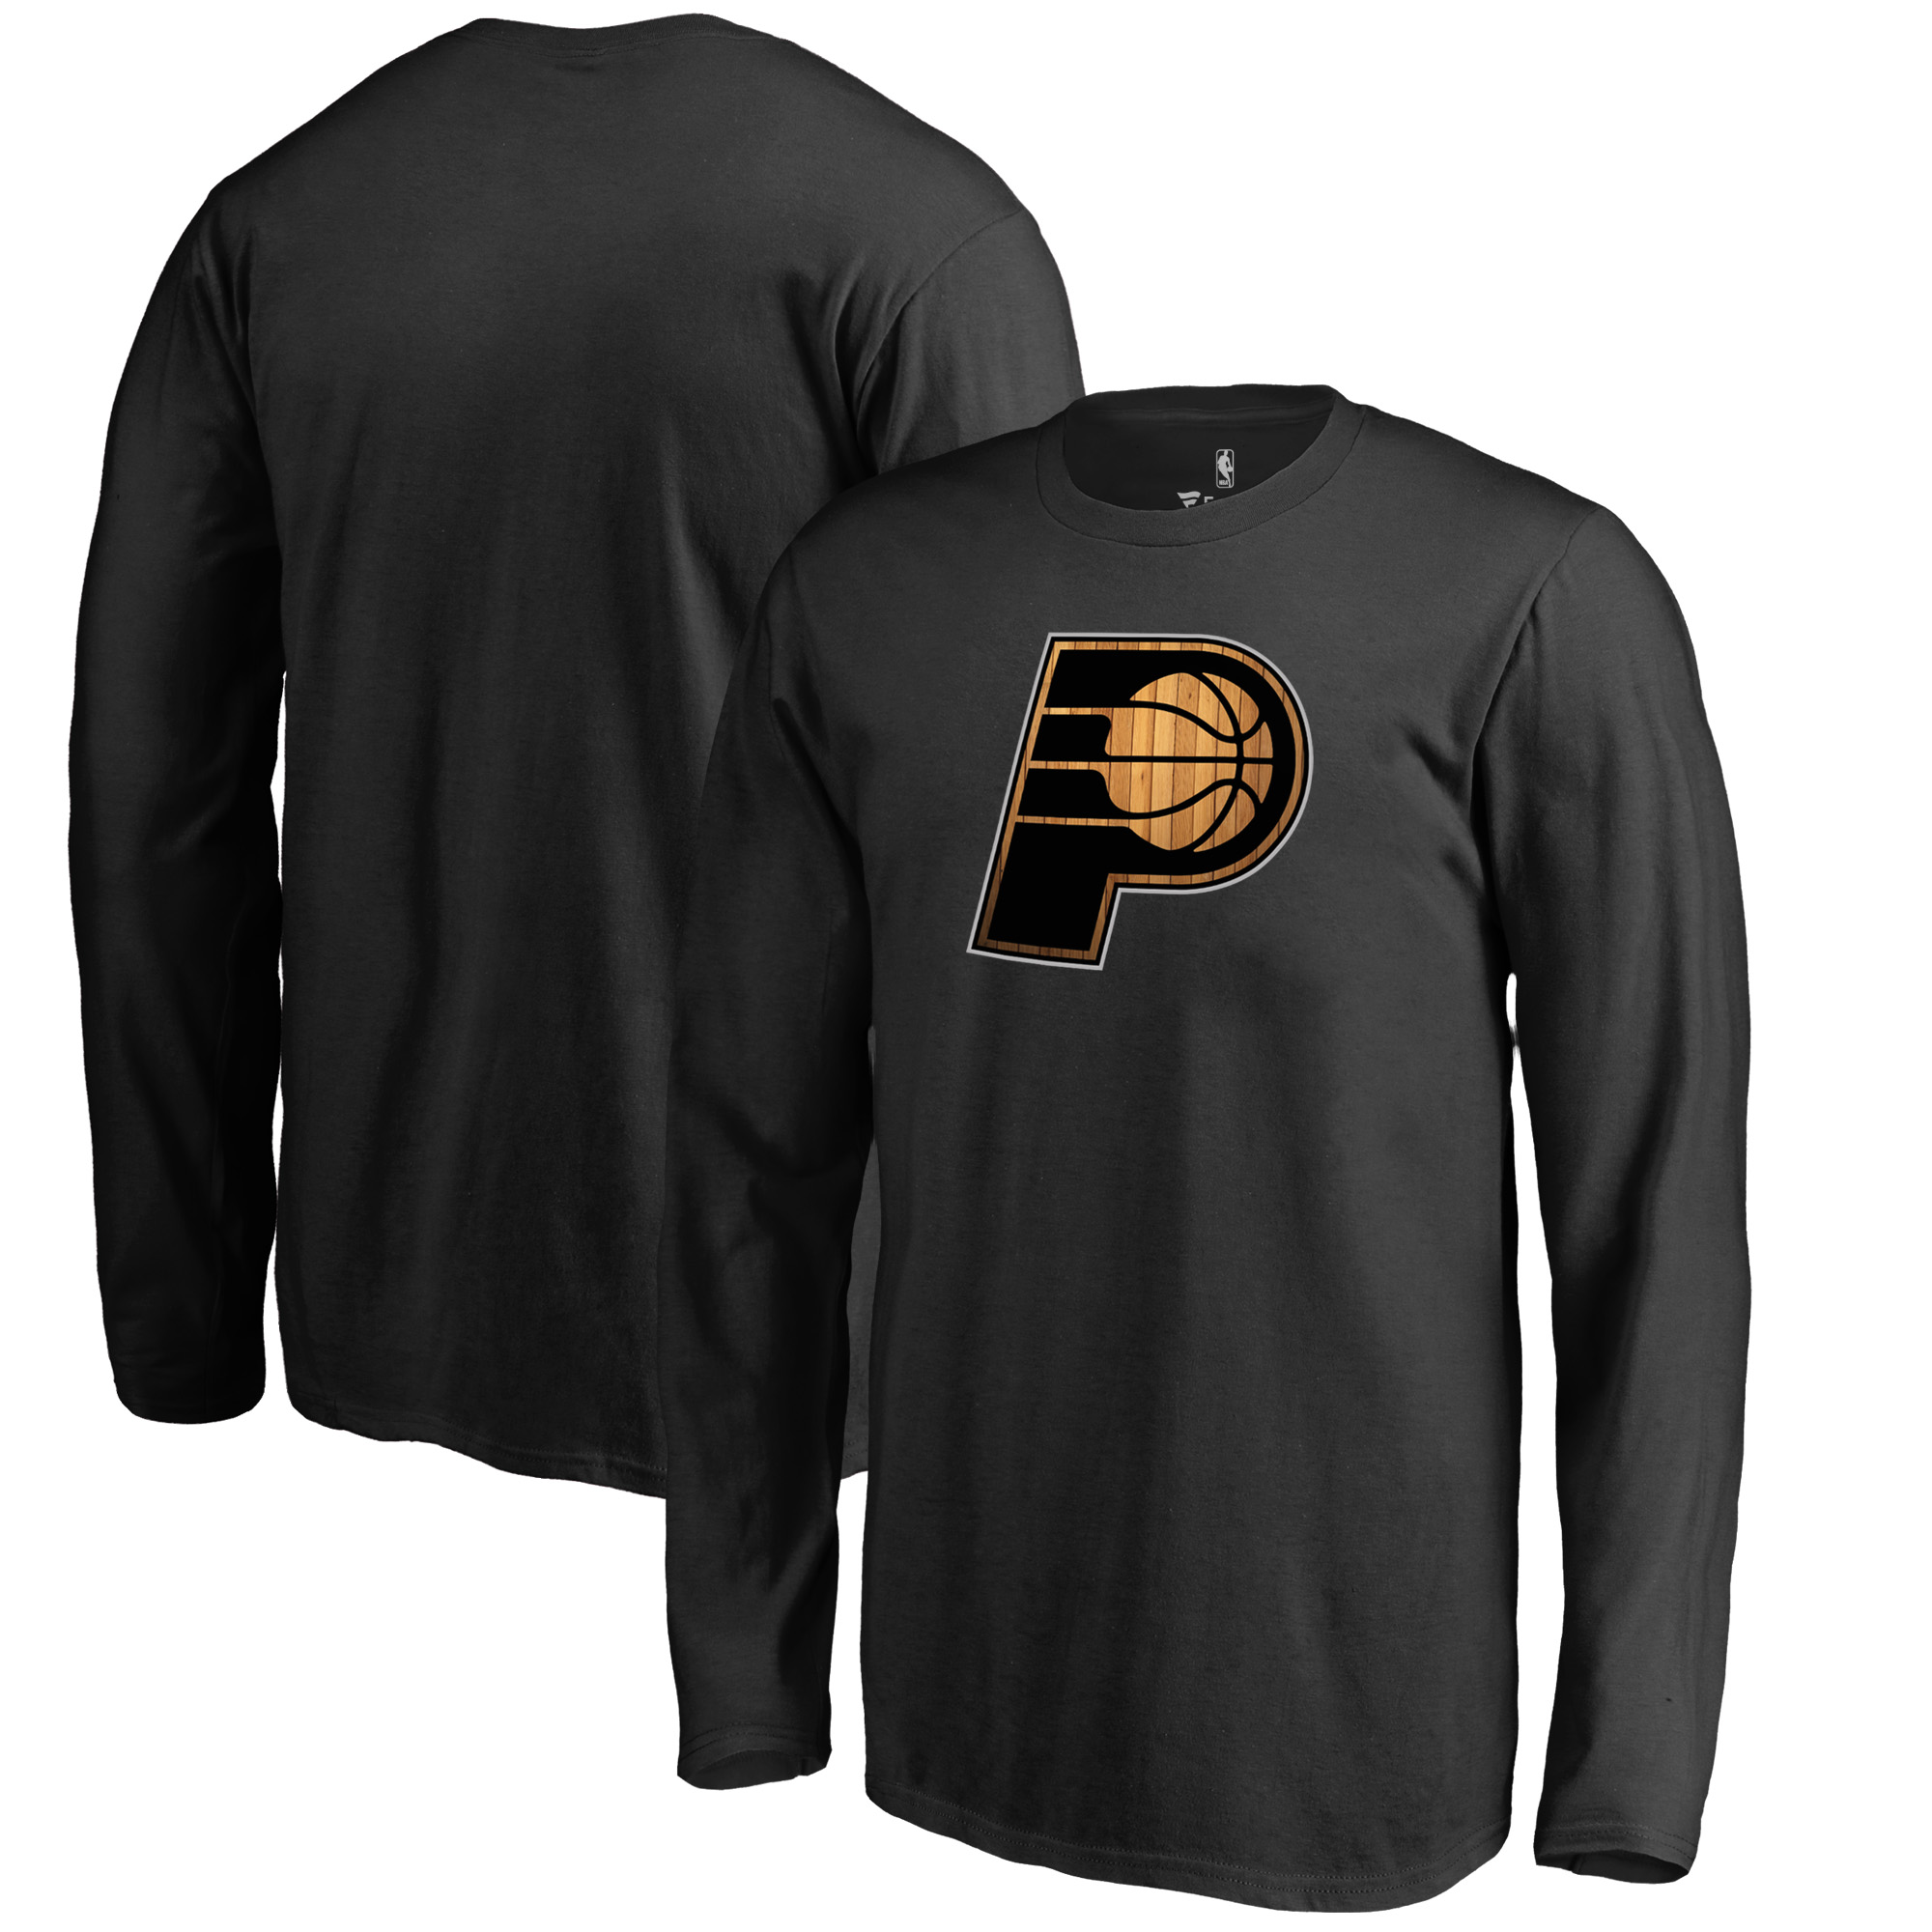 Indiana Pacers Fanatics Branded Youth Hardwood Long Sleeve T-Shirt - Black